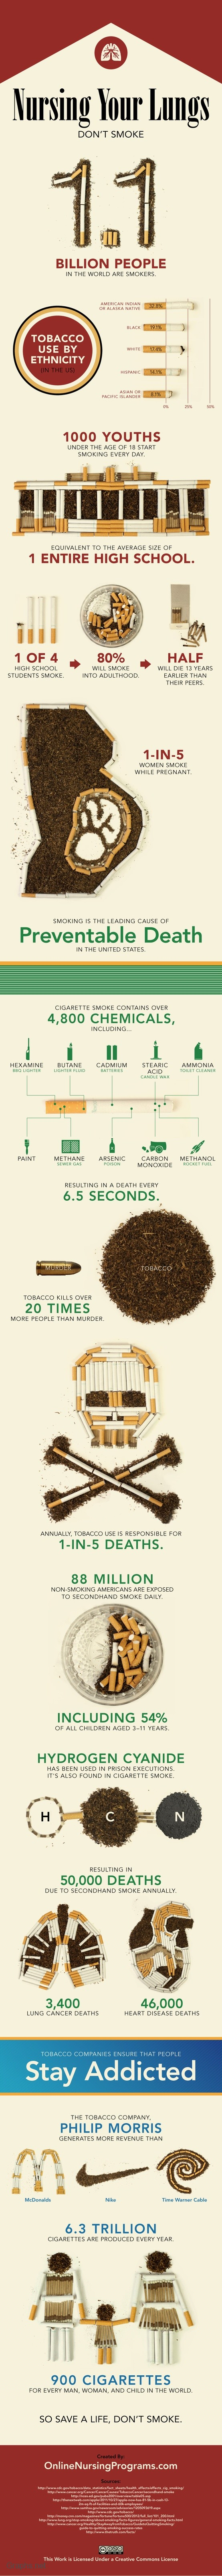 General cigarette smoking statistics